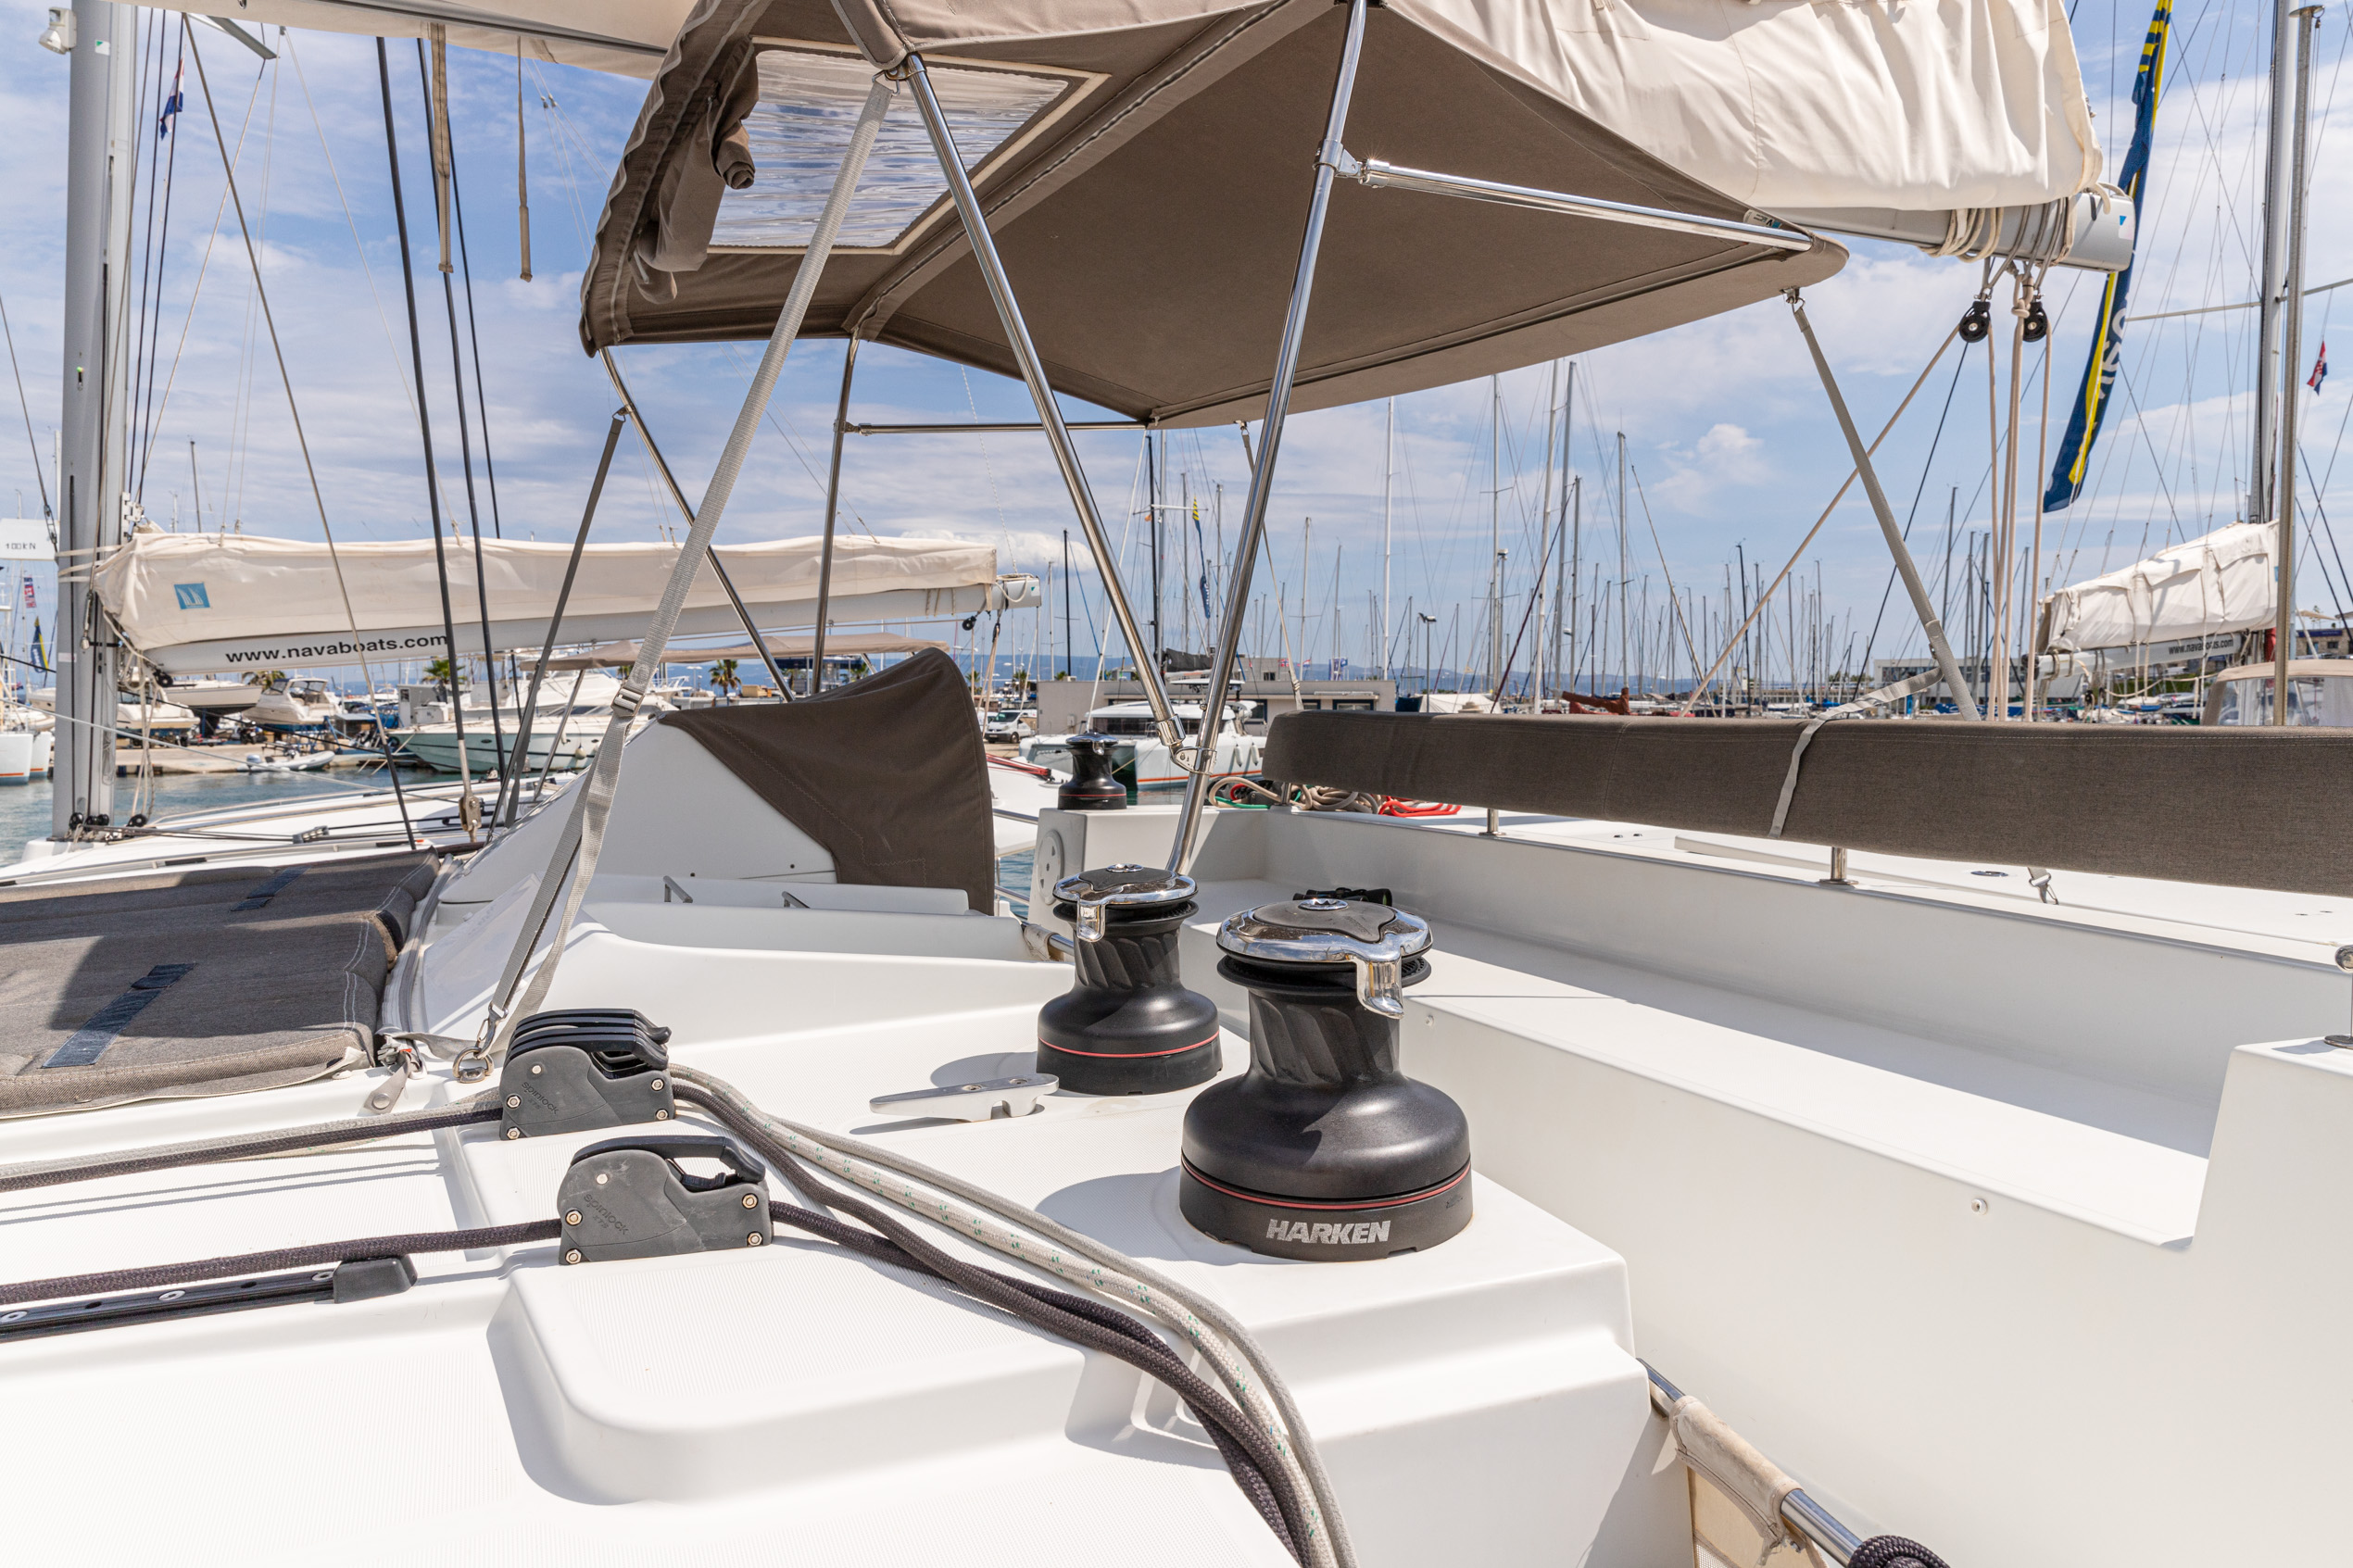 Lagoon 450 (2014) equipped with generator, A/C (sa (MUSTRA I)  - 16